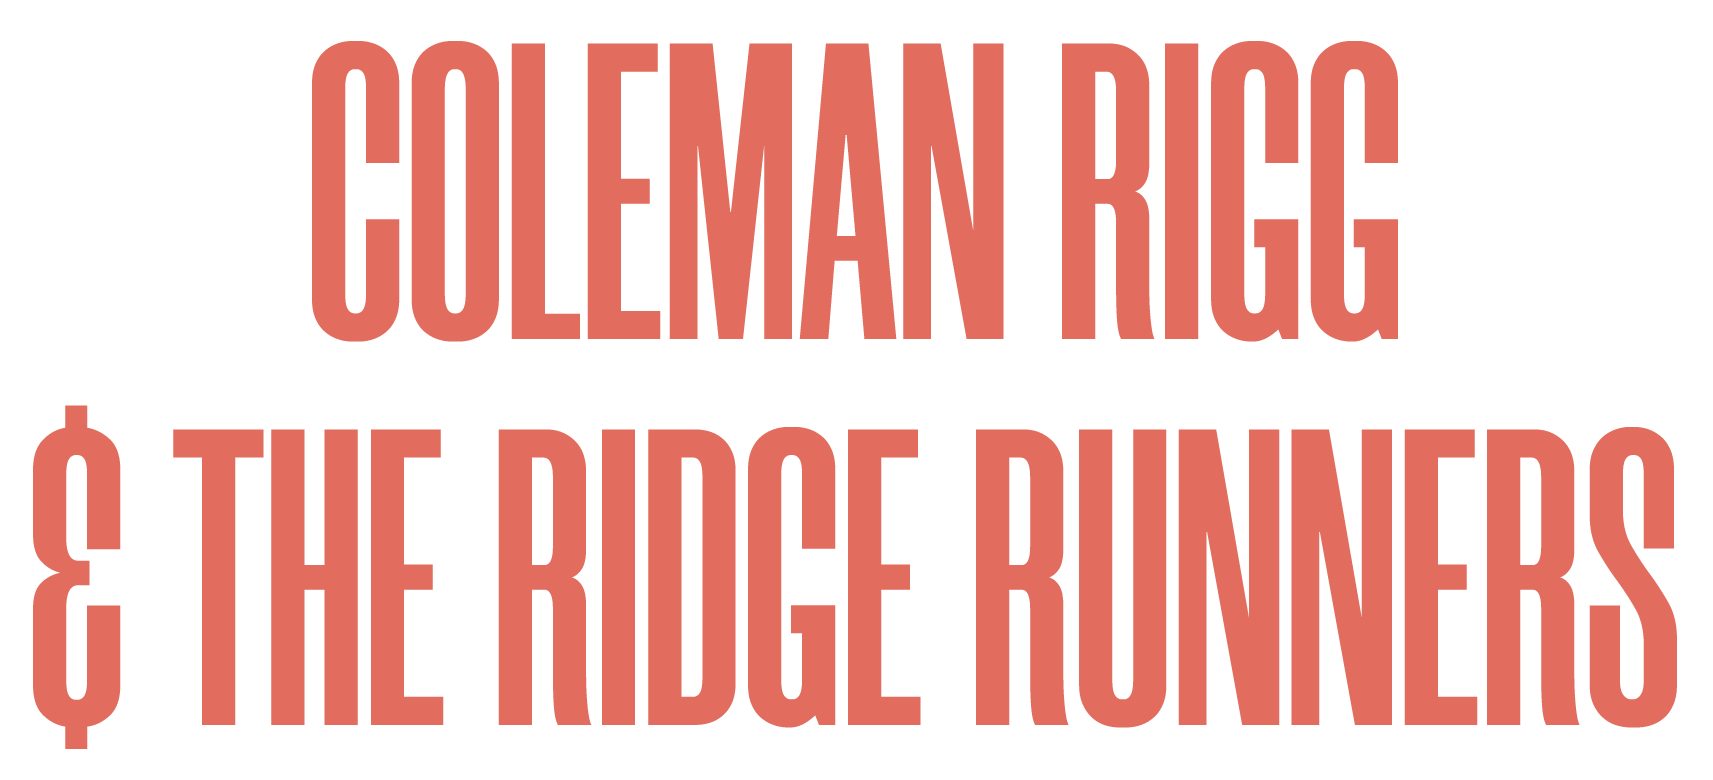 Coleman Rigg and the Ridge Runners